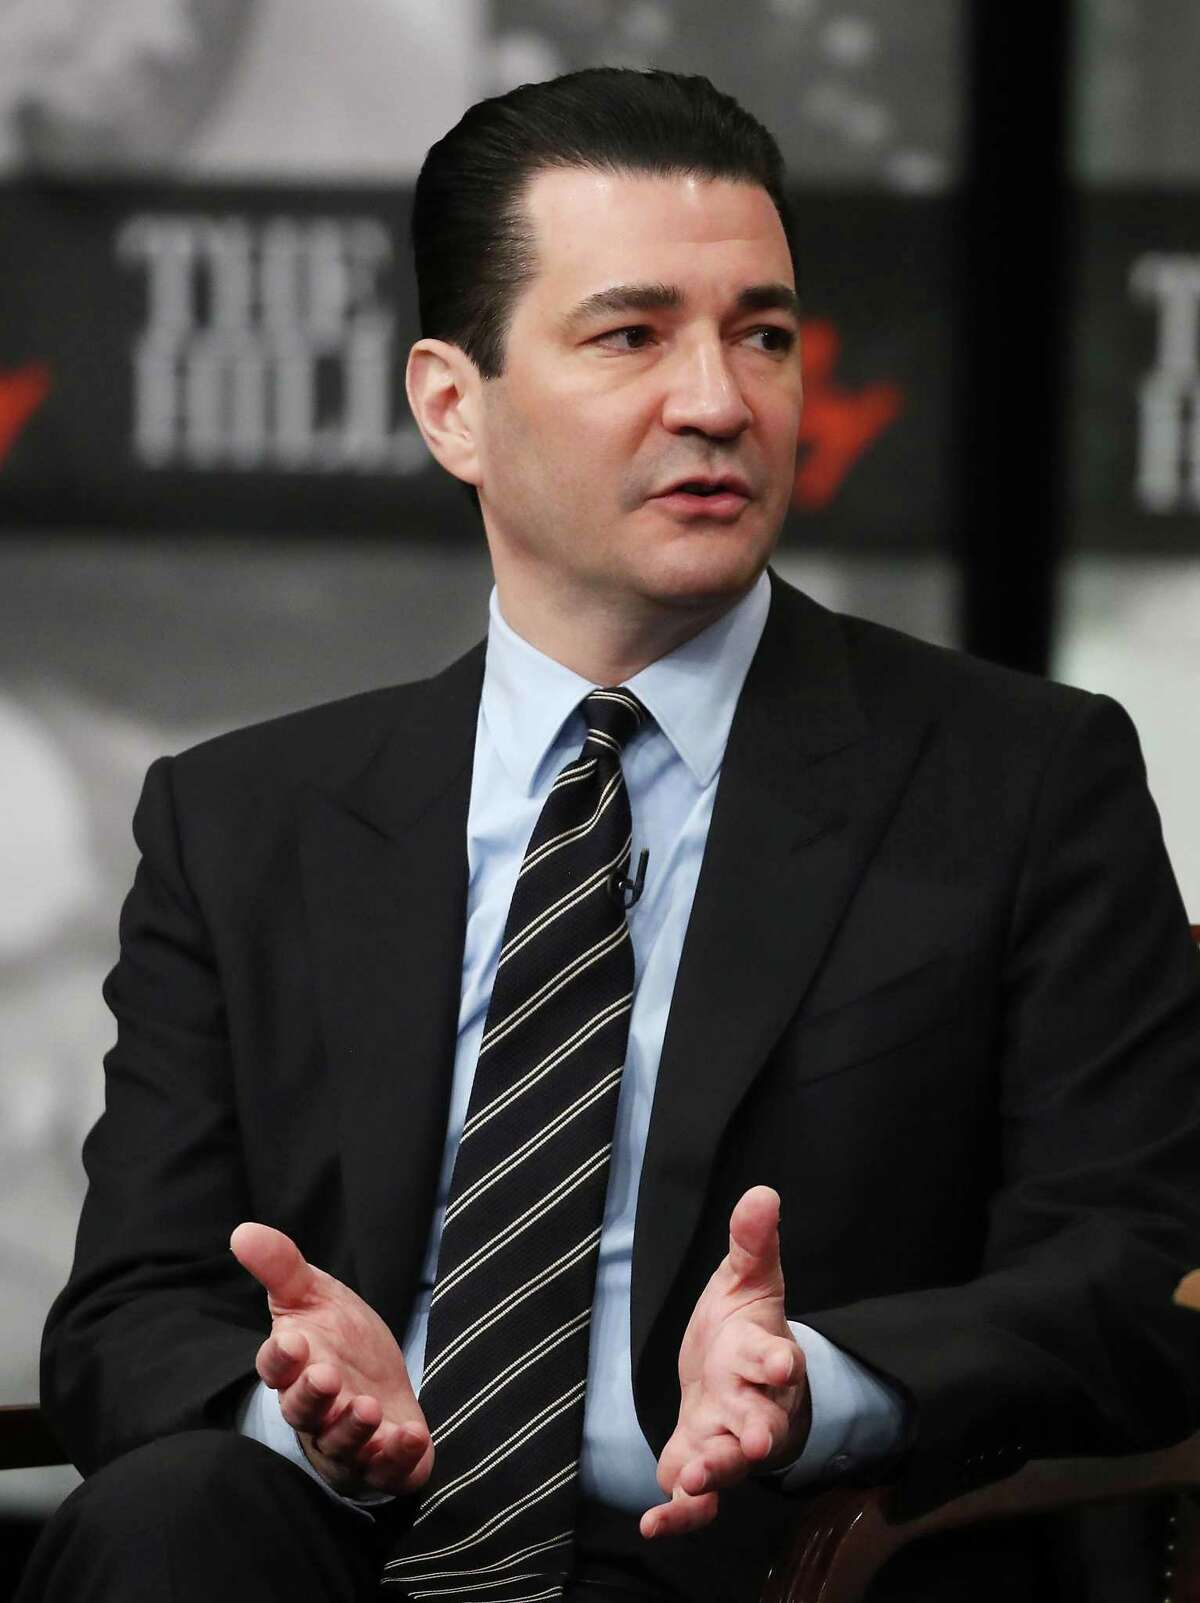 Former Food and Drug Administration Commissioner Scott Gottlieb, of Westport, is a member of an advisory panel helping direct the reopening of Connecticut.